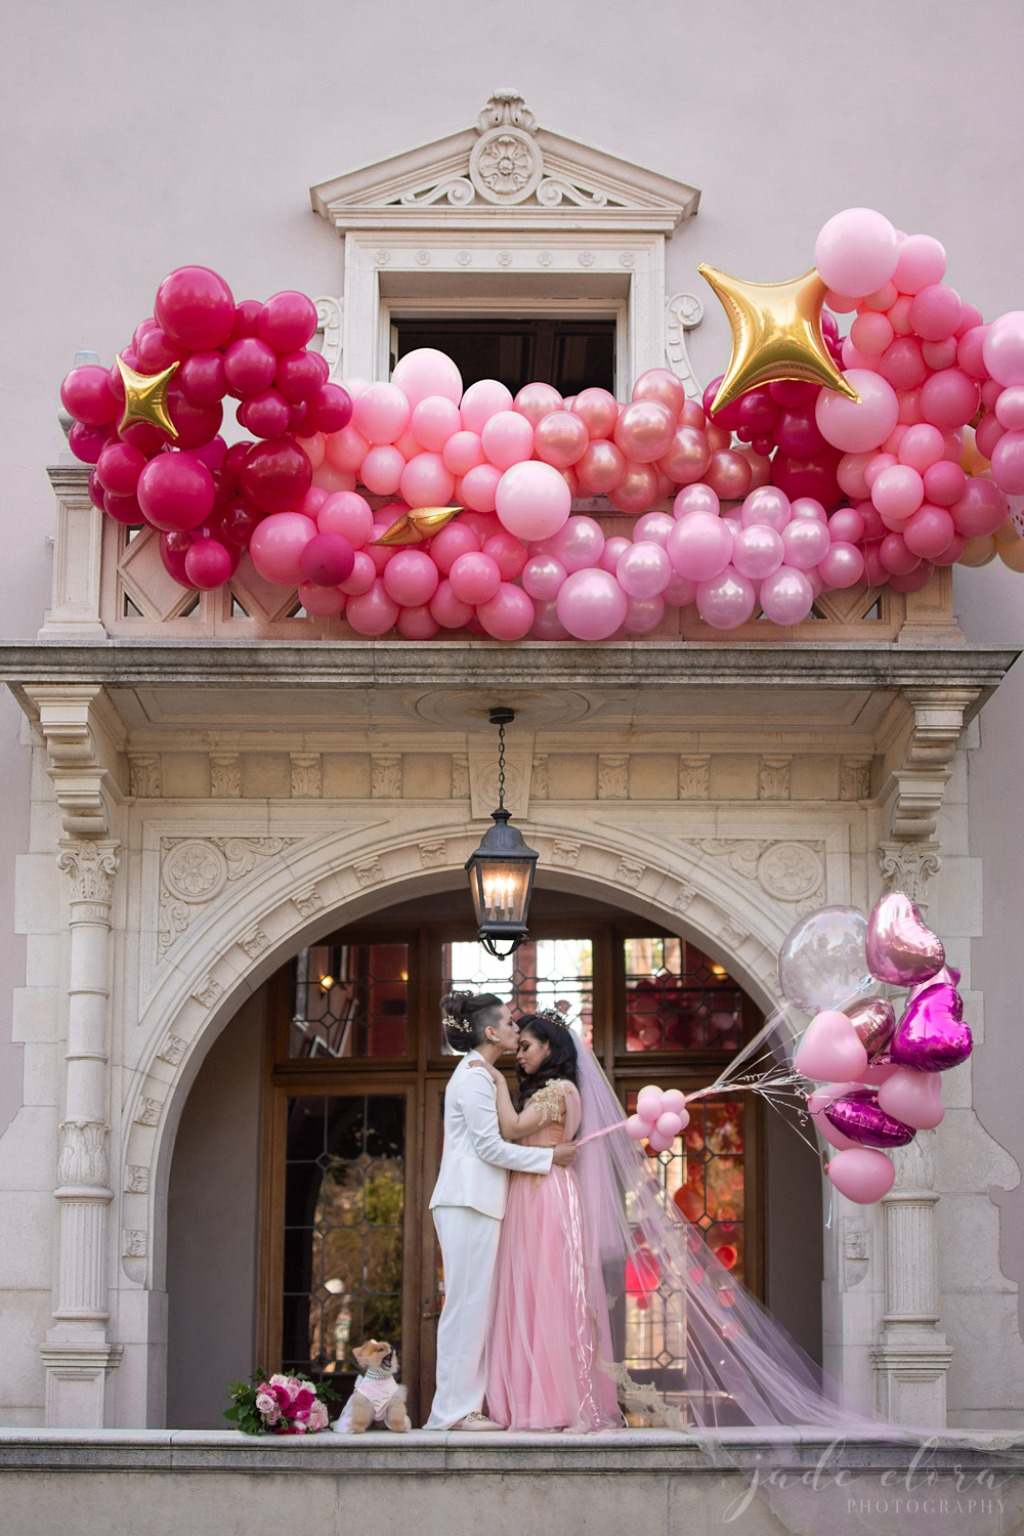 This magical same-sex wedding, inspired by Glinda the Good Witch, features balloons and an explosion of pink, plus an adorable couple